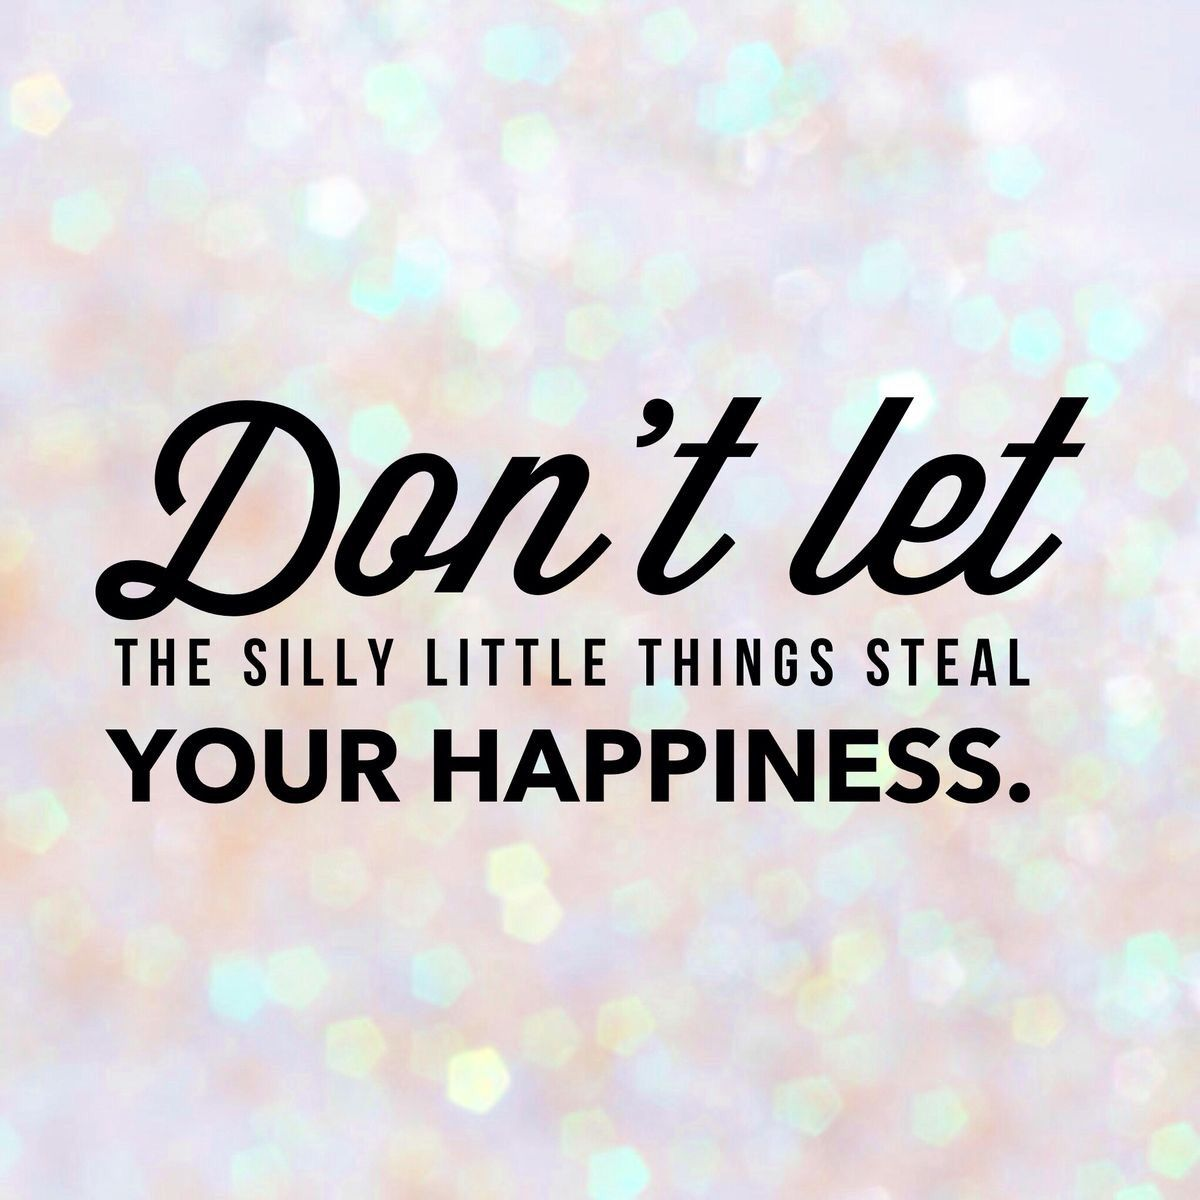 Don't let the silly little things steal your happiness.